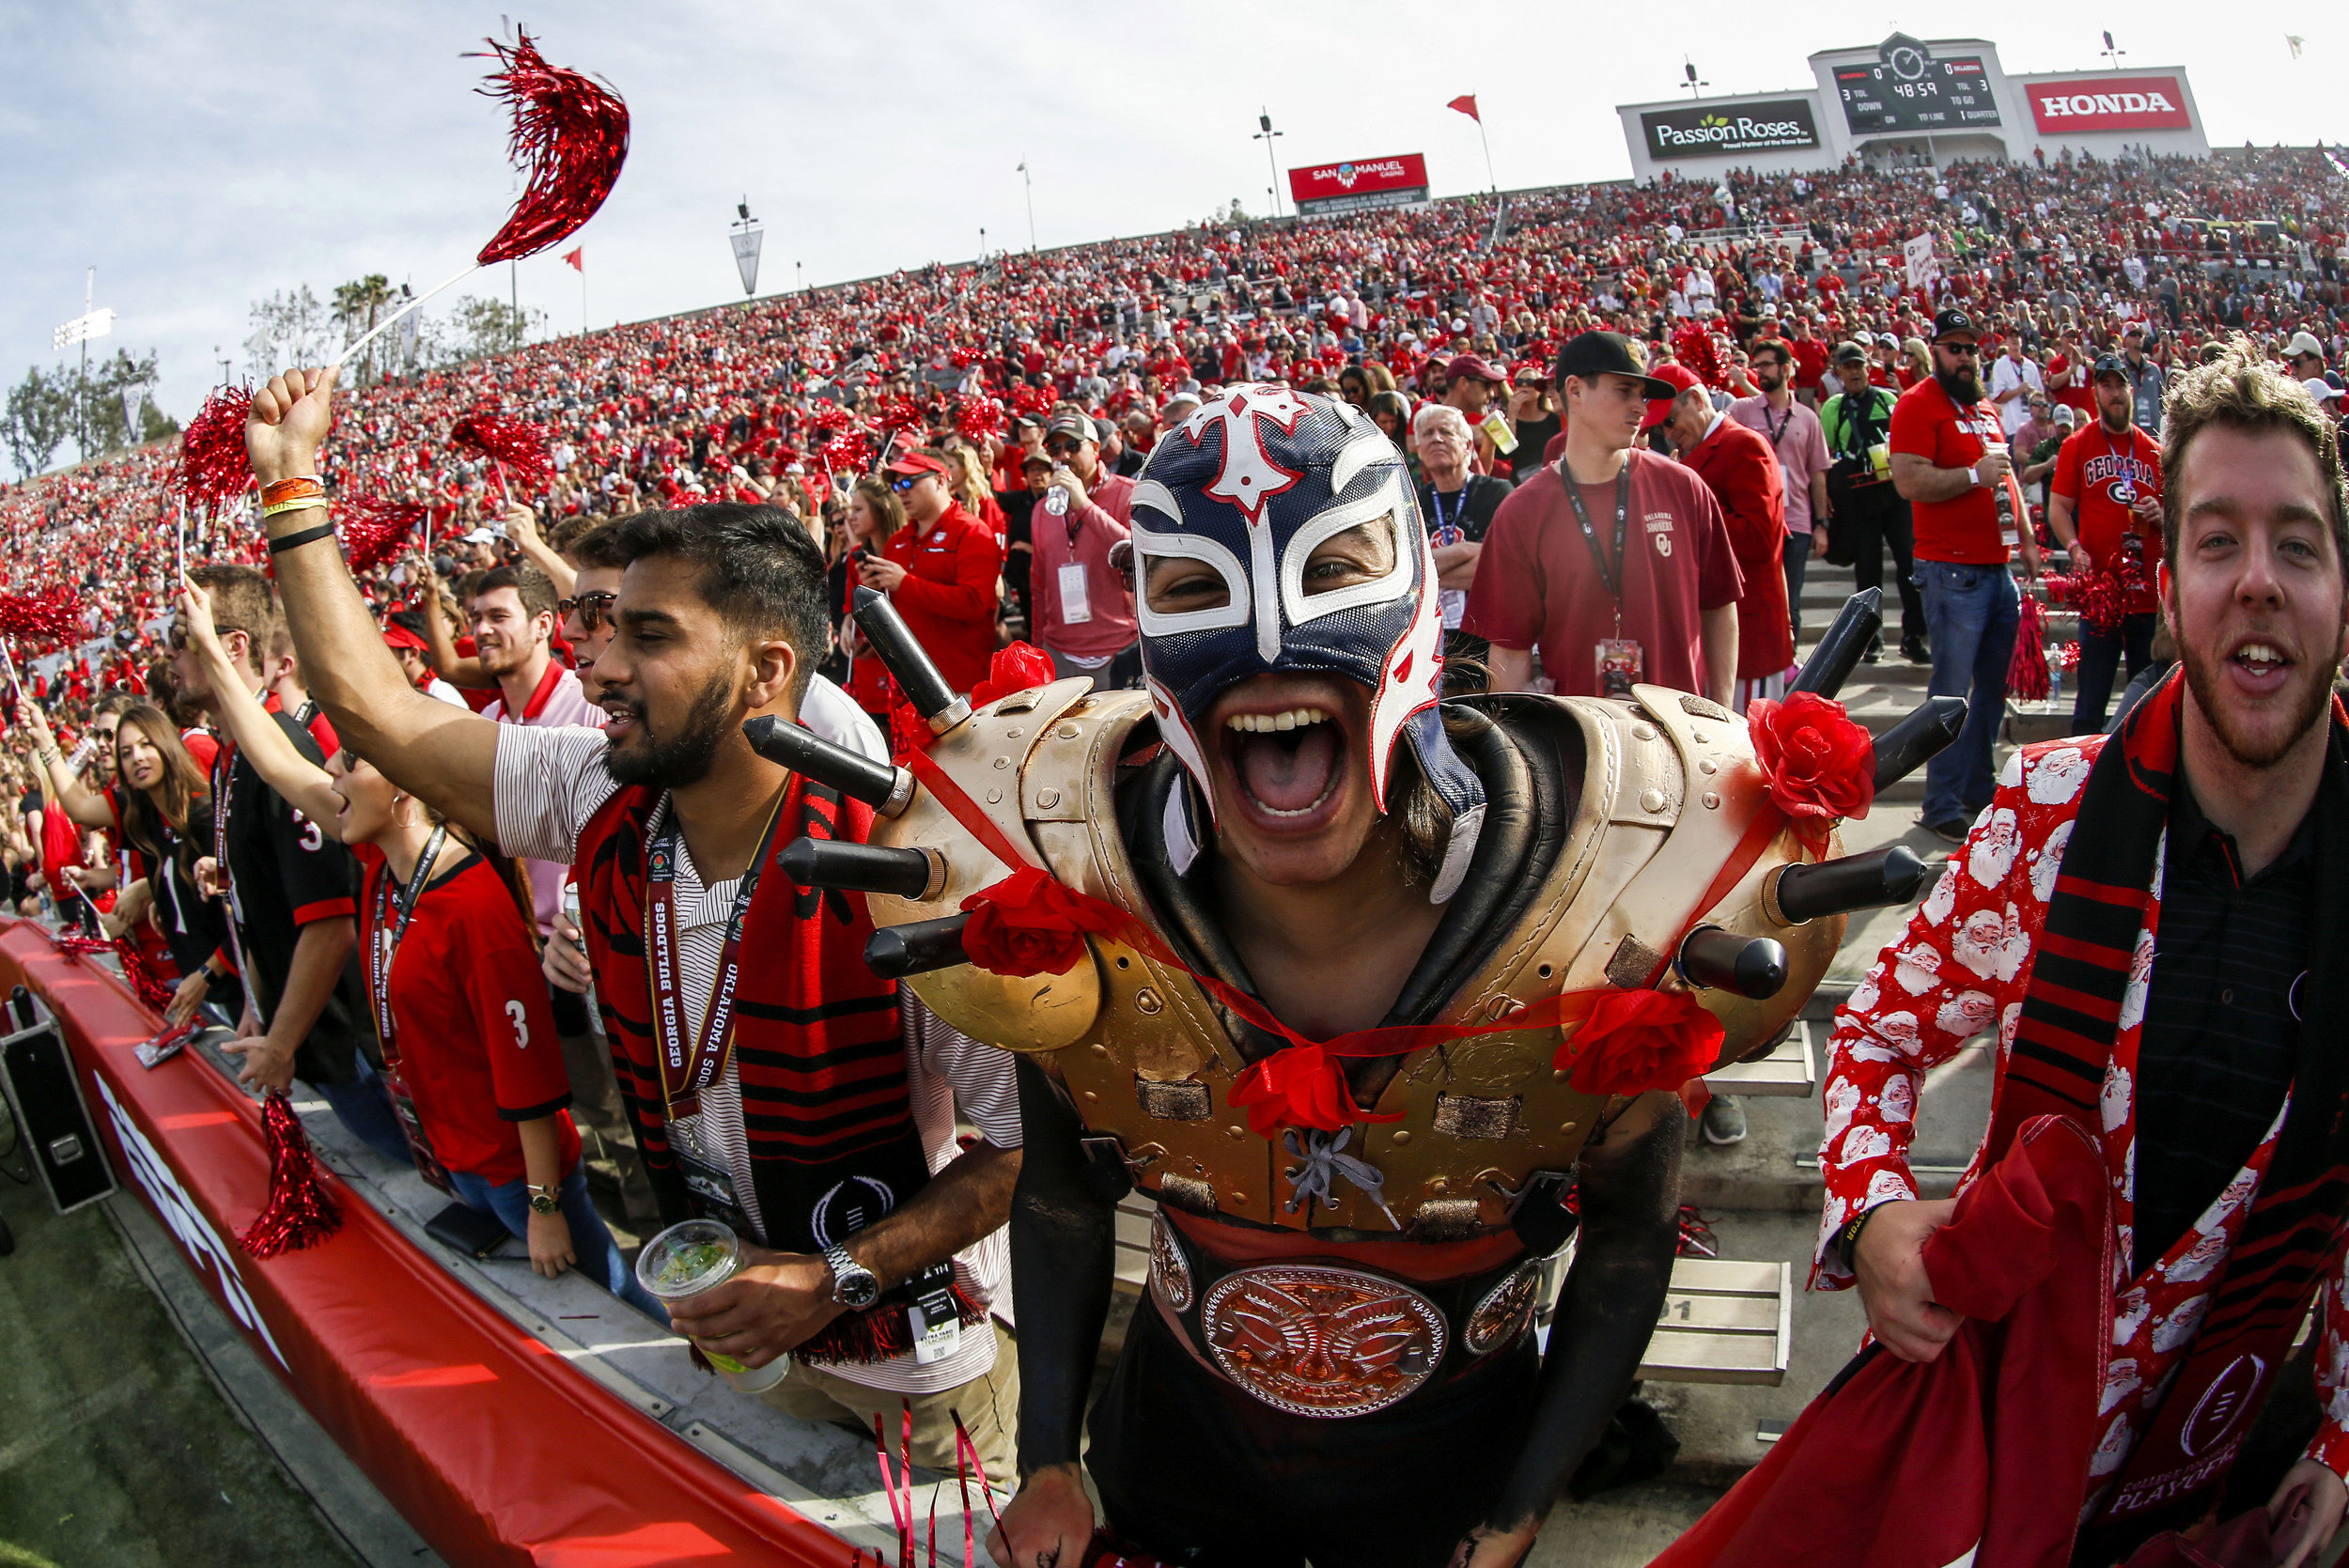 Fans of Georgia Bulldogs show their supports during the Rose Bowl NCAA college football game against Oklahoma Sooners Monday, Jan. 1, 2018, in Pasadena, California, the United States. Georgia Bulldogs won 54-48 in overtime.